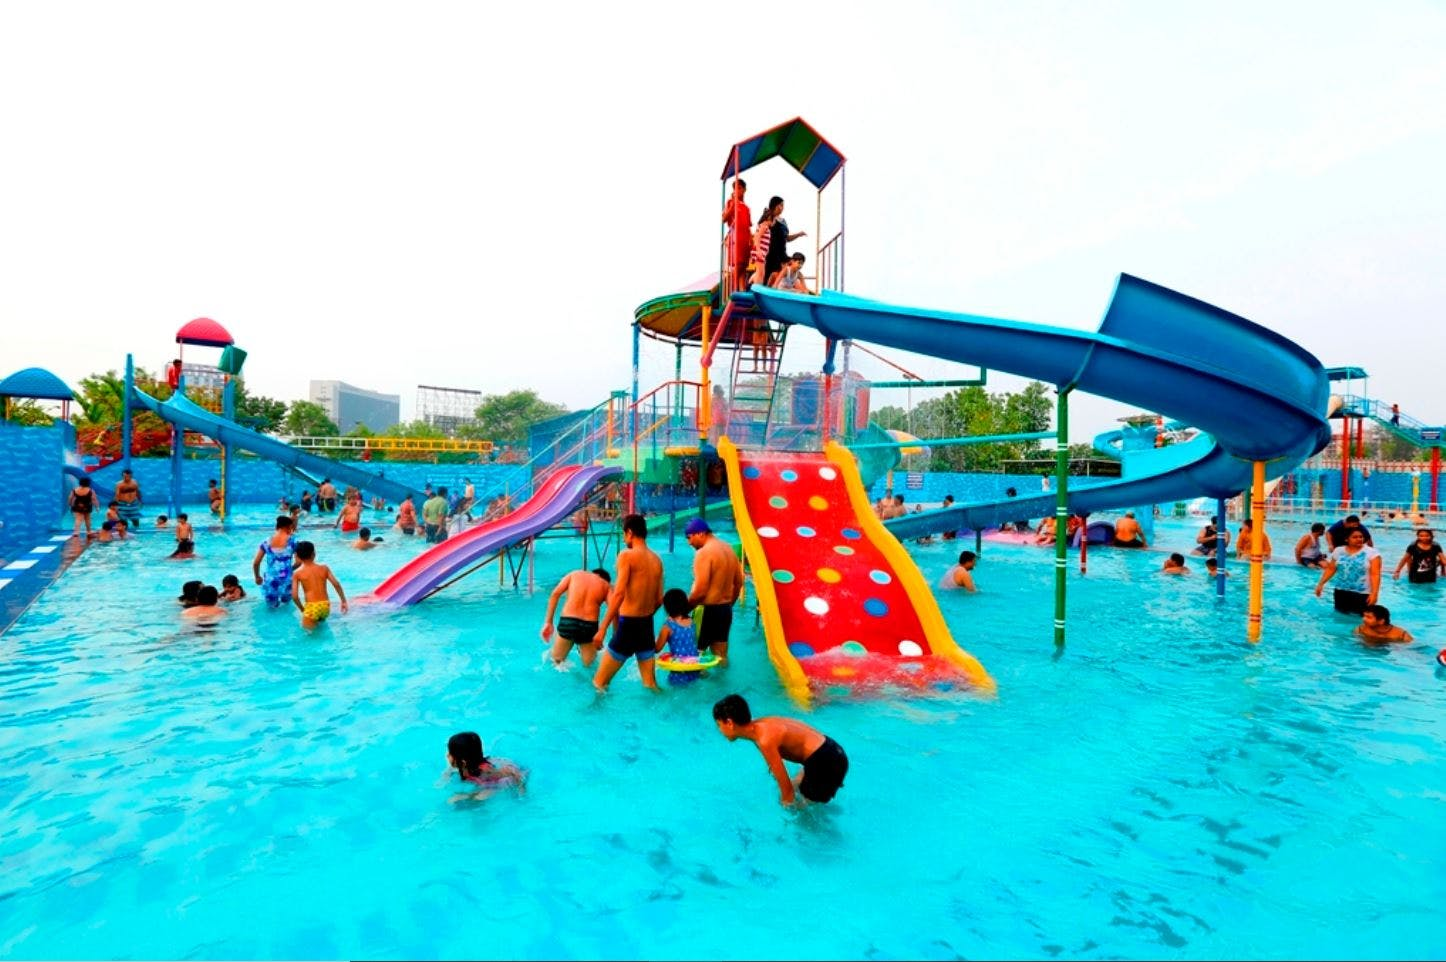 Water park,Swimming pool,Amusement park,Leisure,Recreation,Fun,Leisure centre,Park,Nonbuilding structure,Outdoor play equipment